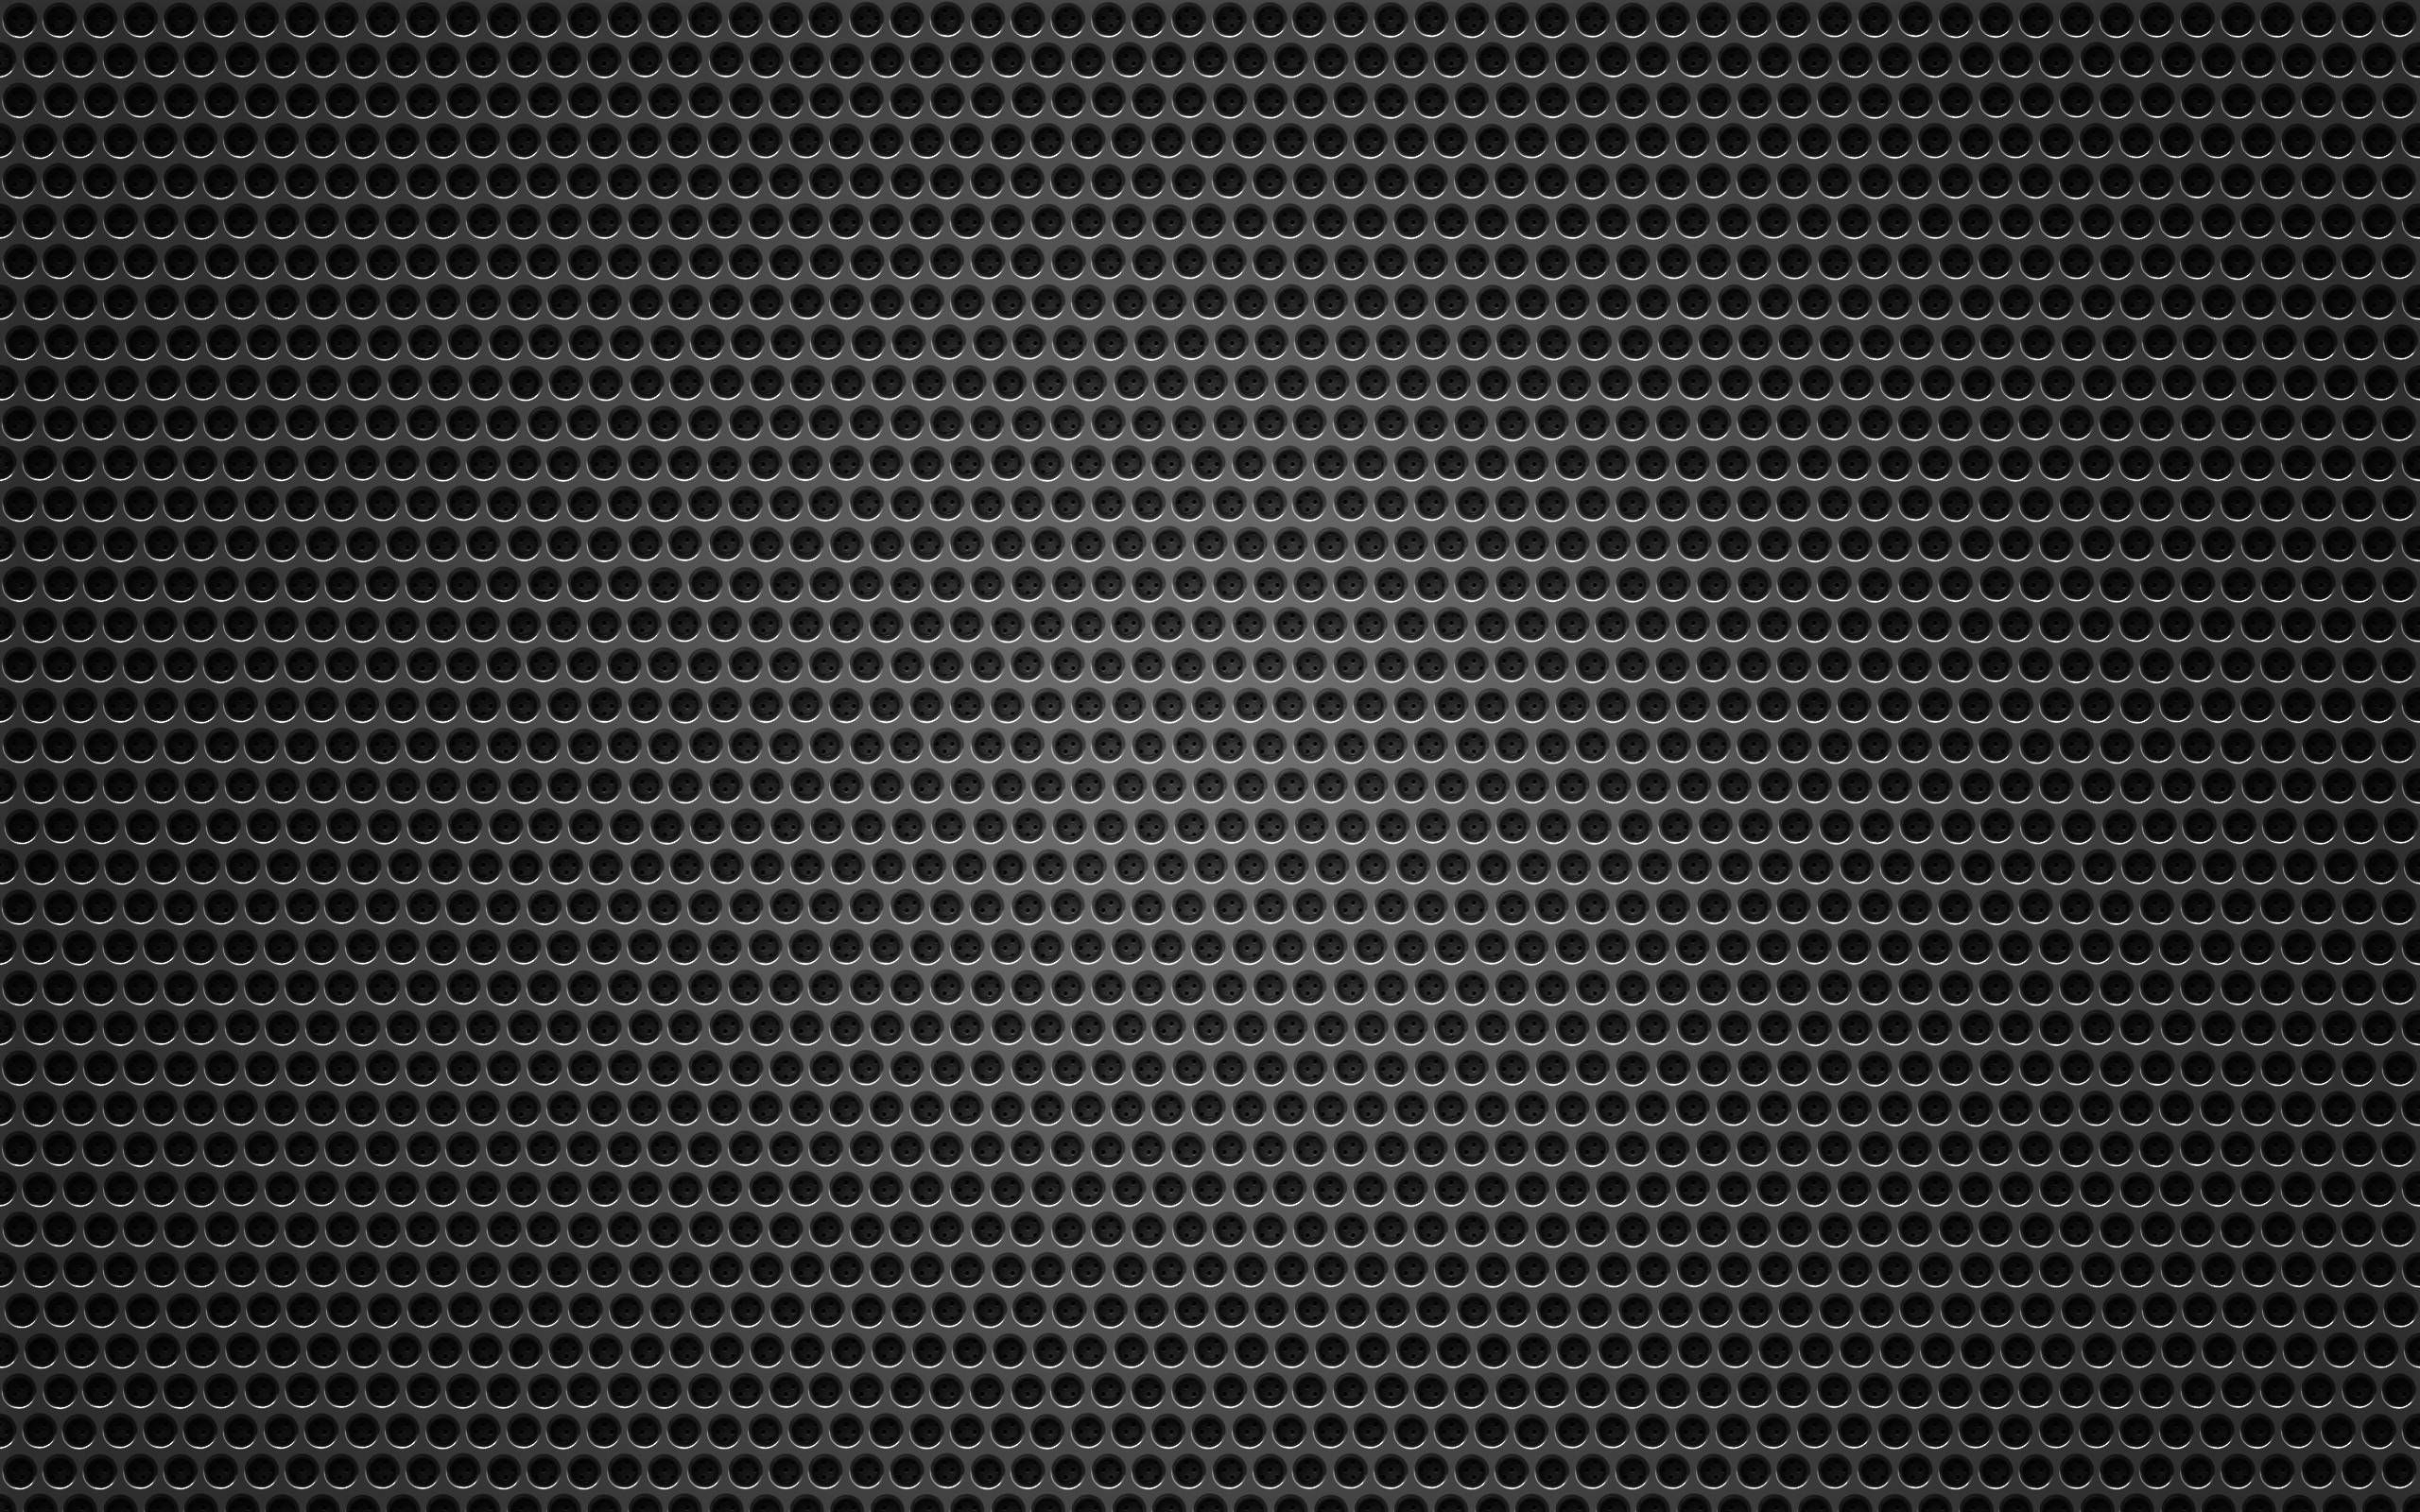 black carbon wallpapers wallpaper | hd wallpapers | pinterest